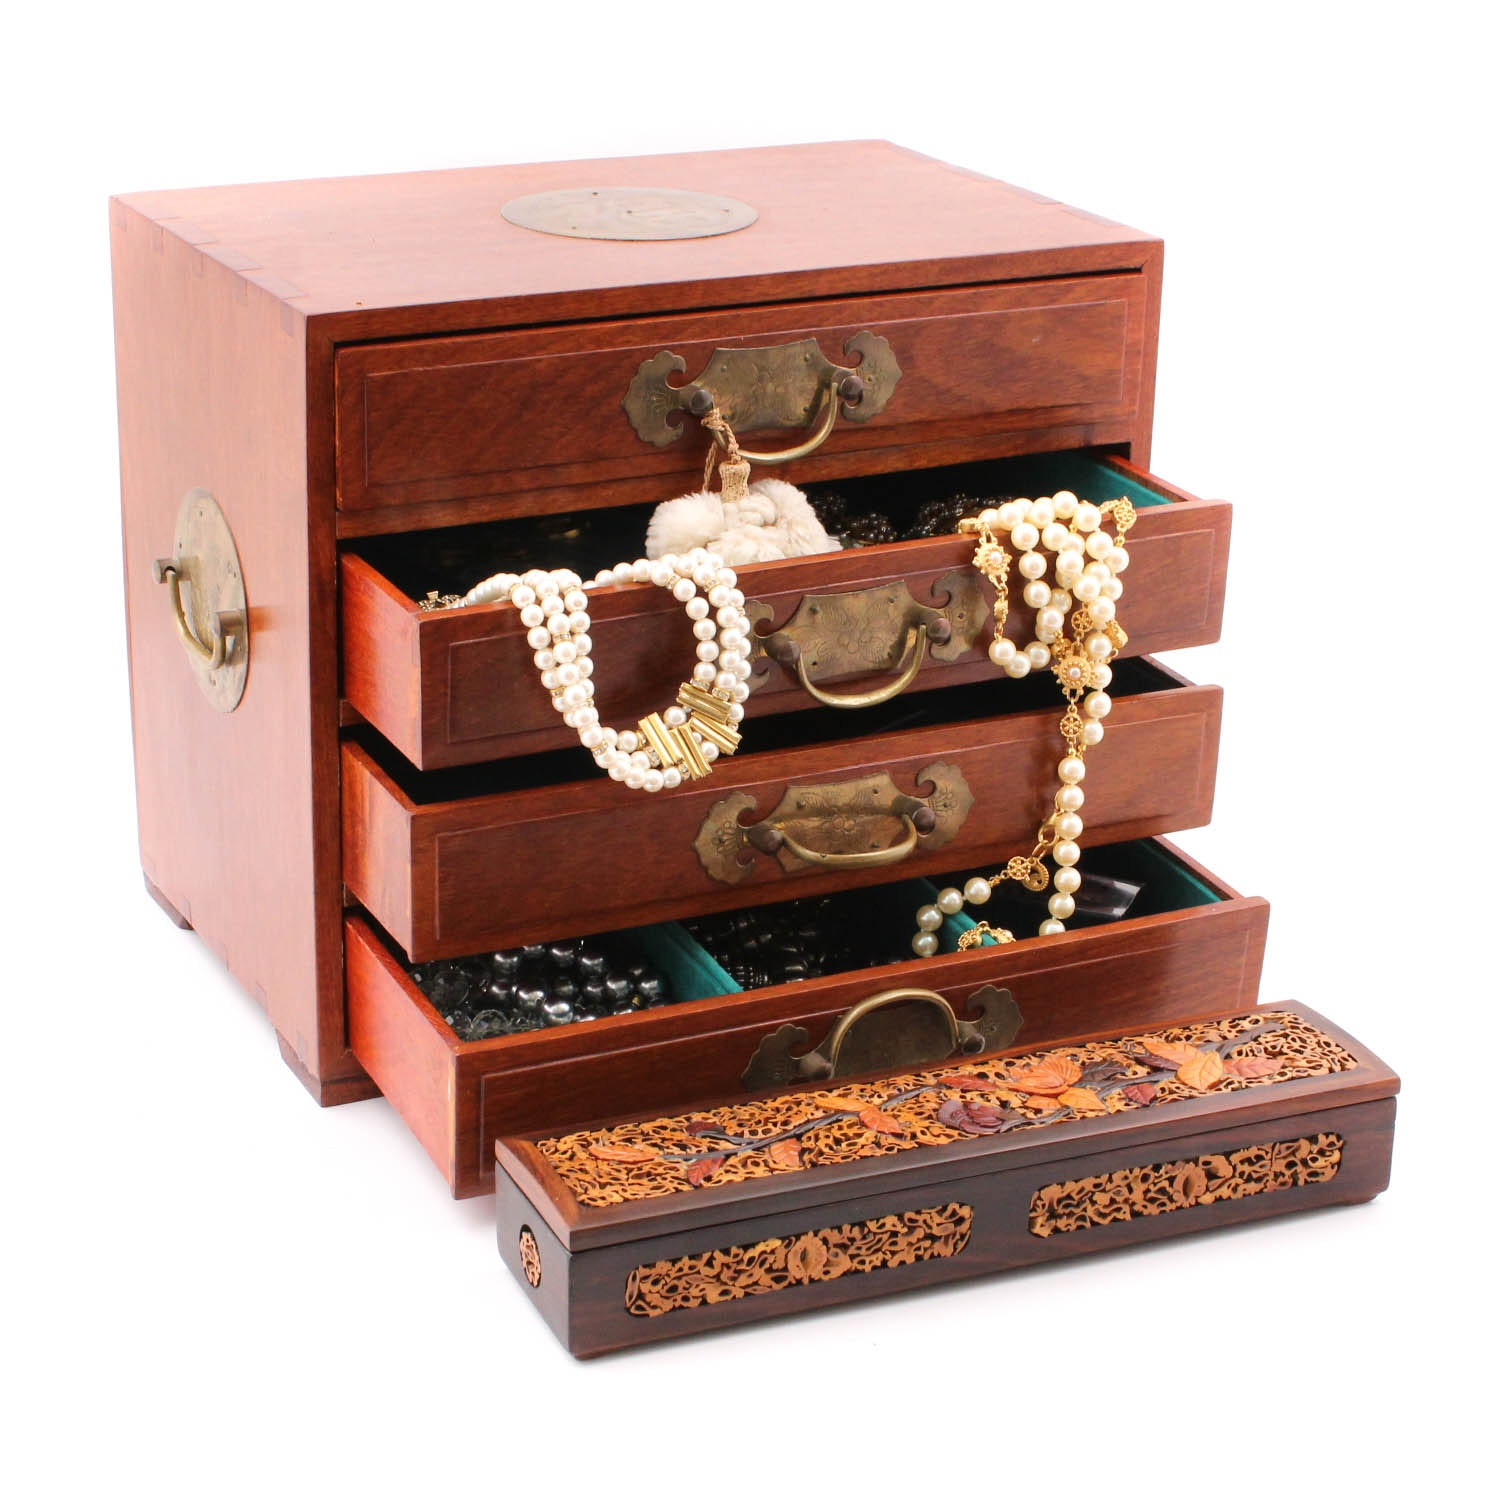 East Asian Wooden Jewelry Boxes and Costume Jewelry